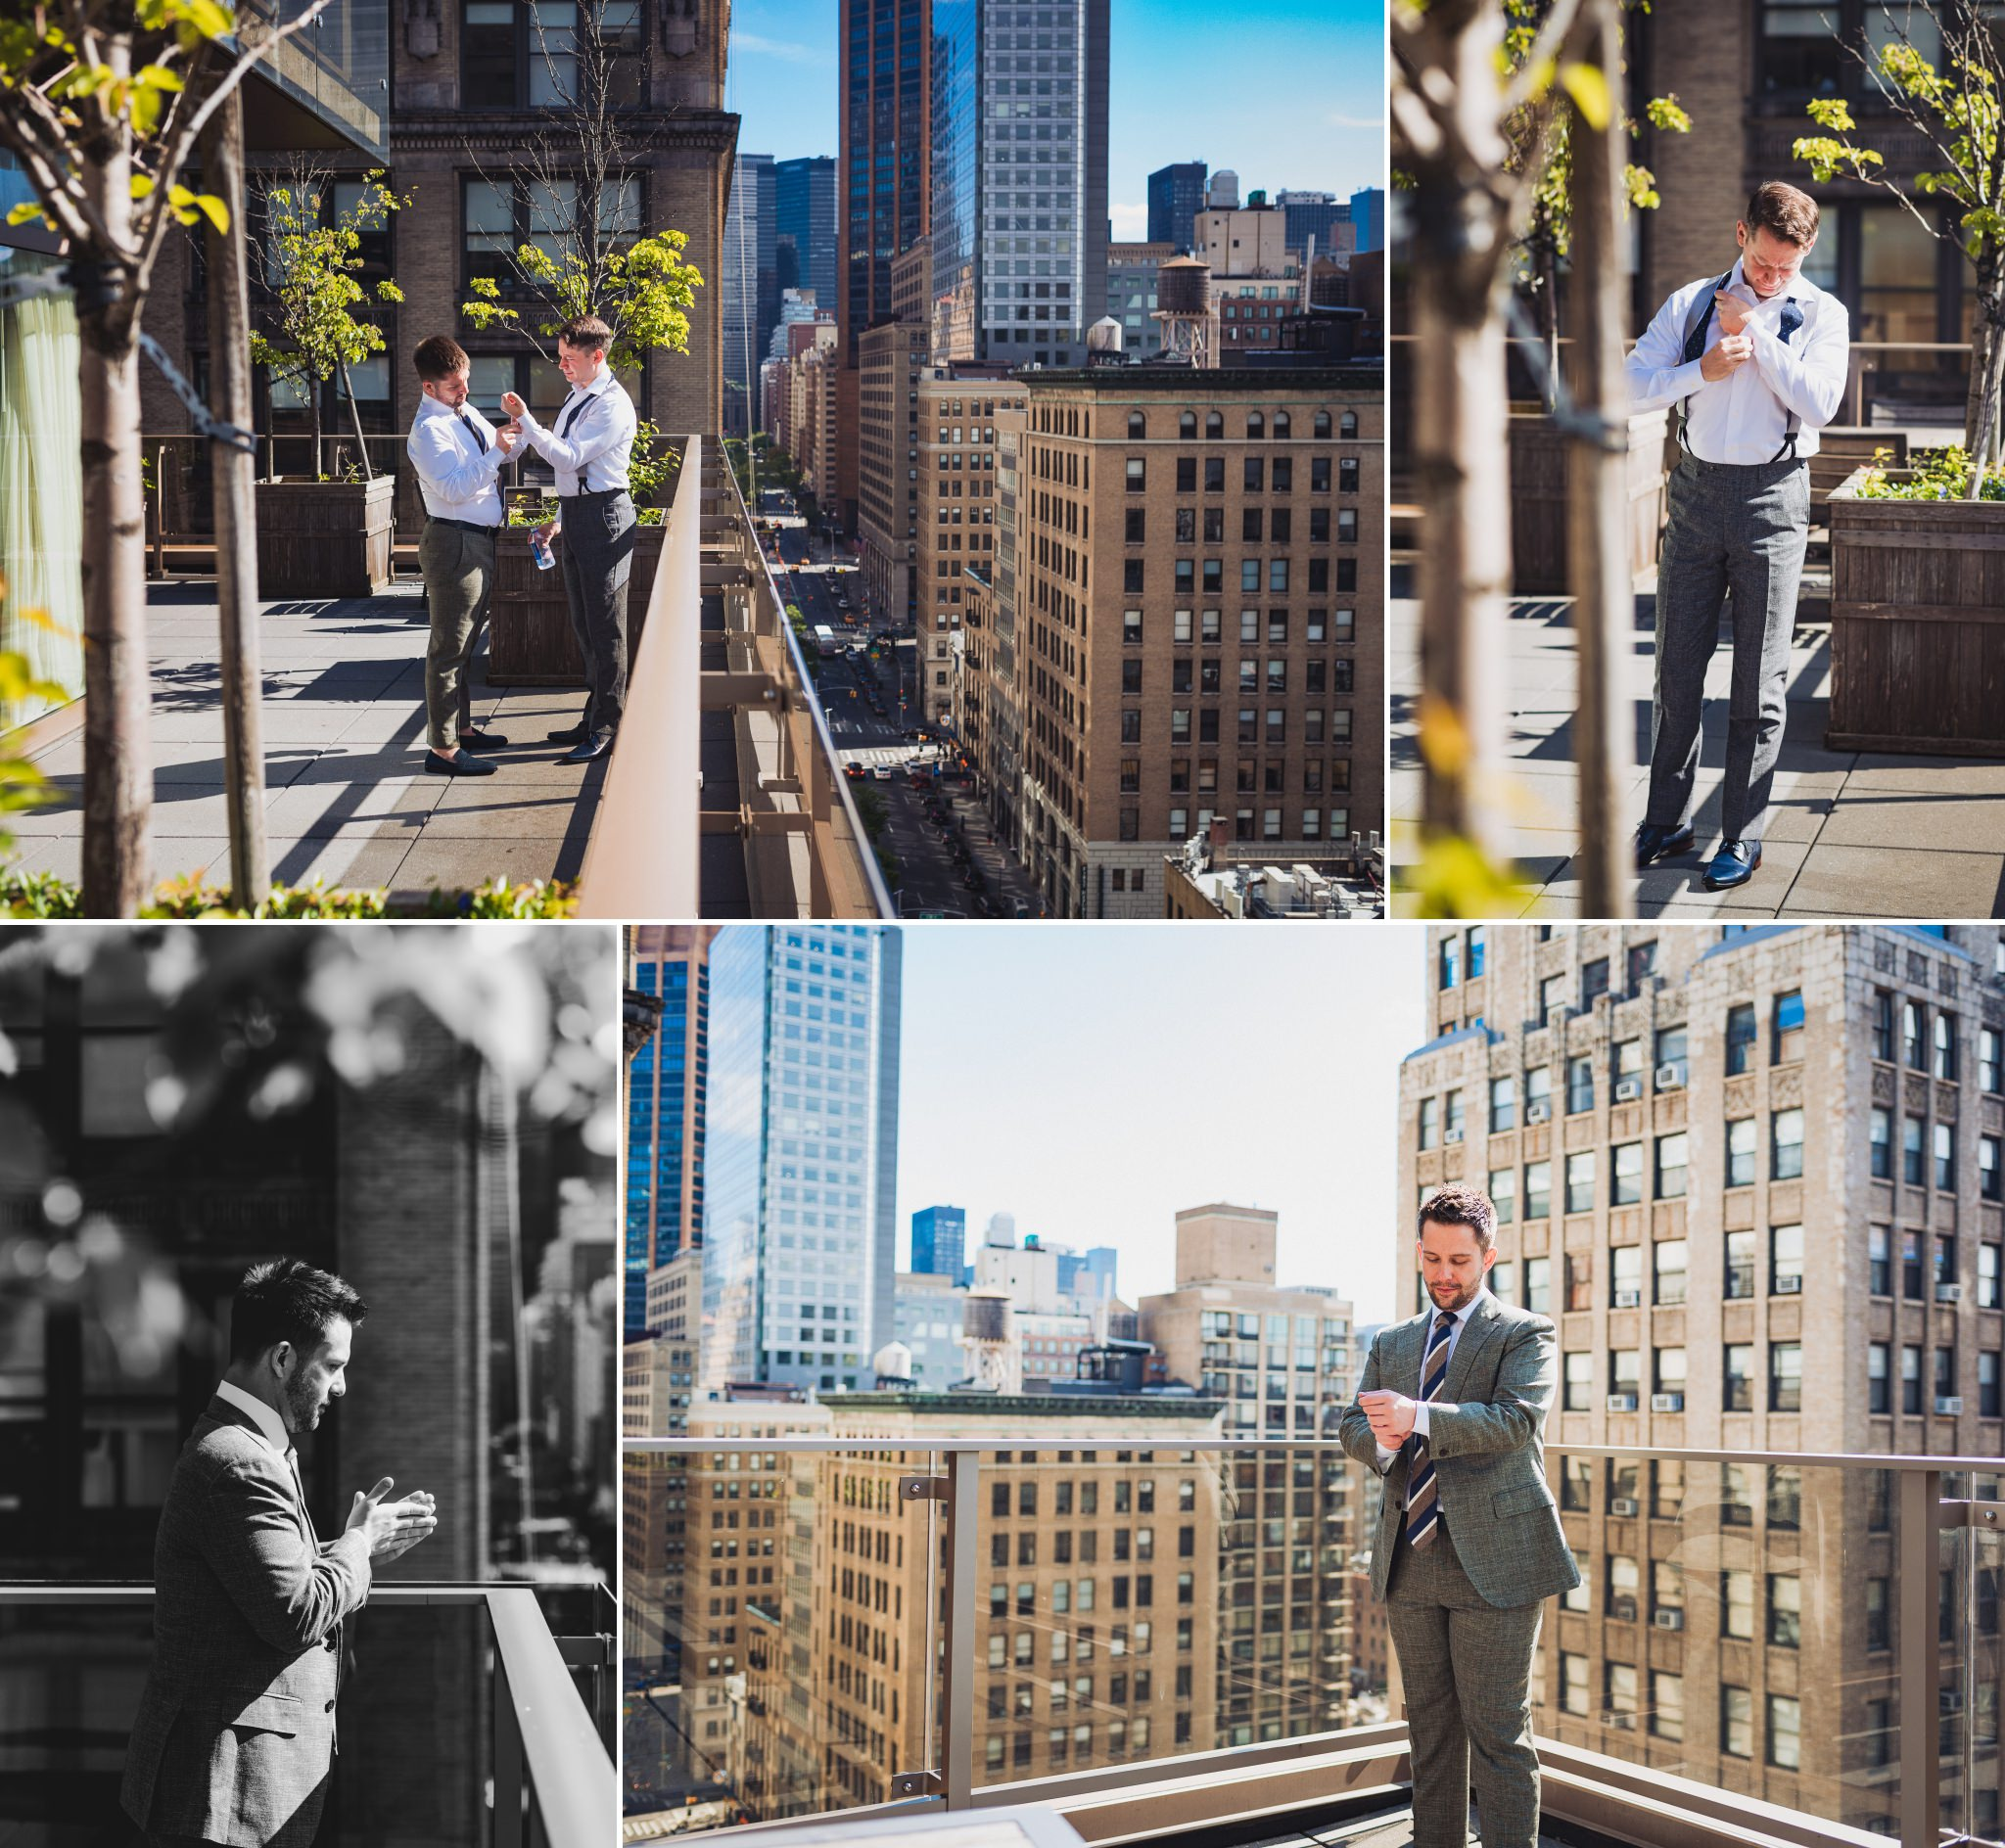 scenes from Brian and Scott's New York wedding, where they got ready together at the Royalton Park Avenue Hotel in Manhattan, New York.